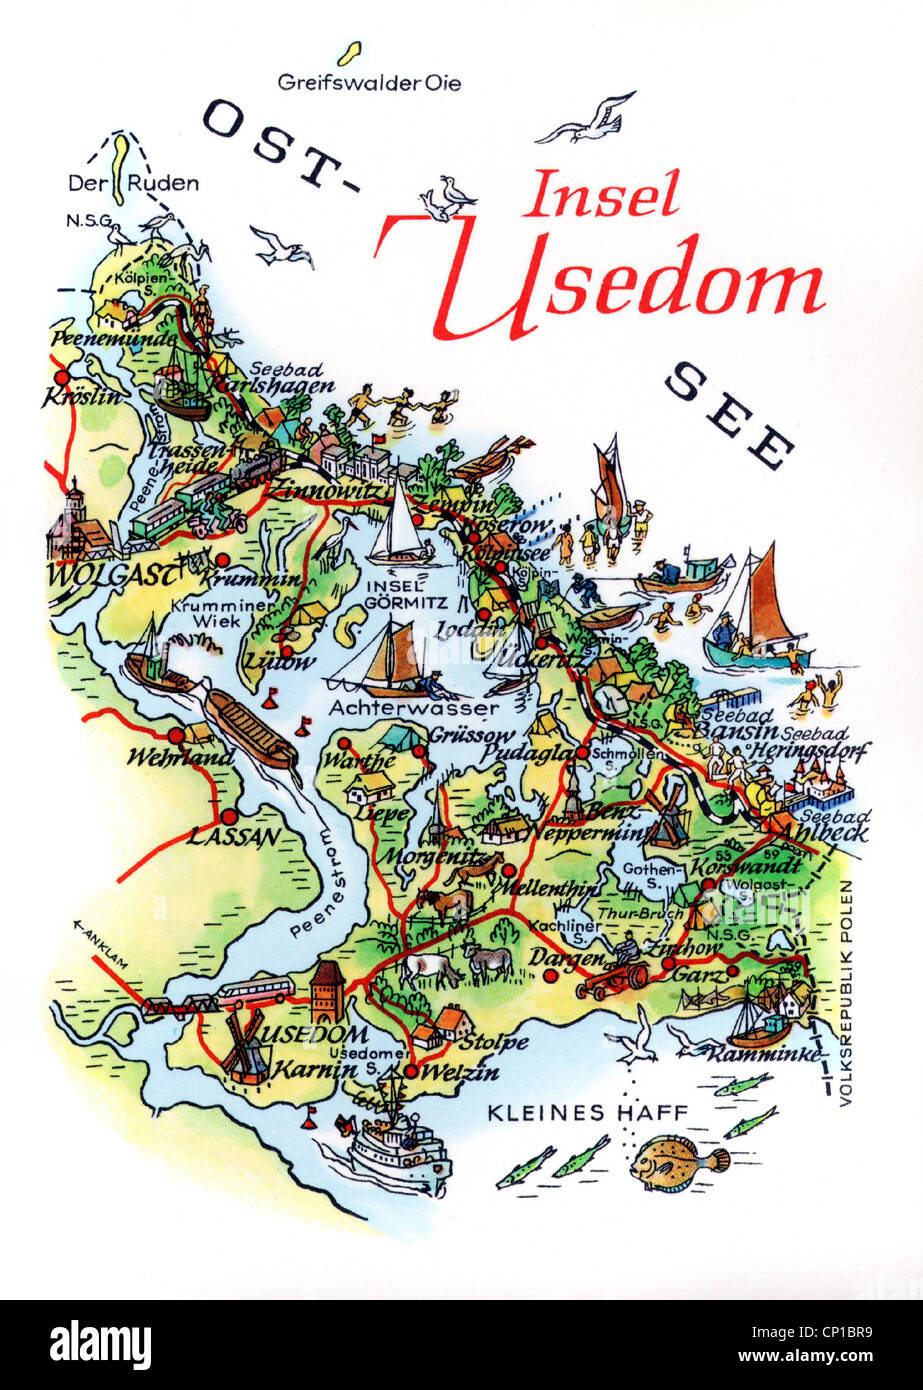 geography travel germany islands usedom map drawing by a hoppe leipzig circa 1960s 20th century historic historical